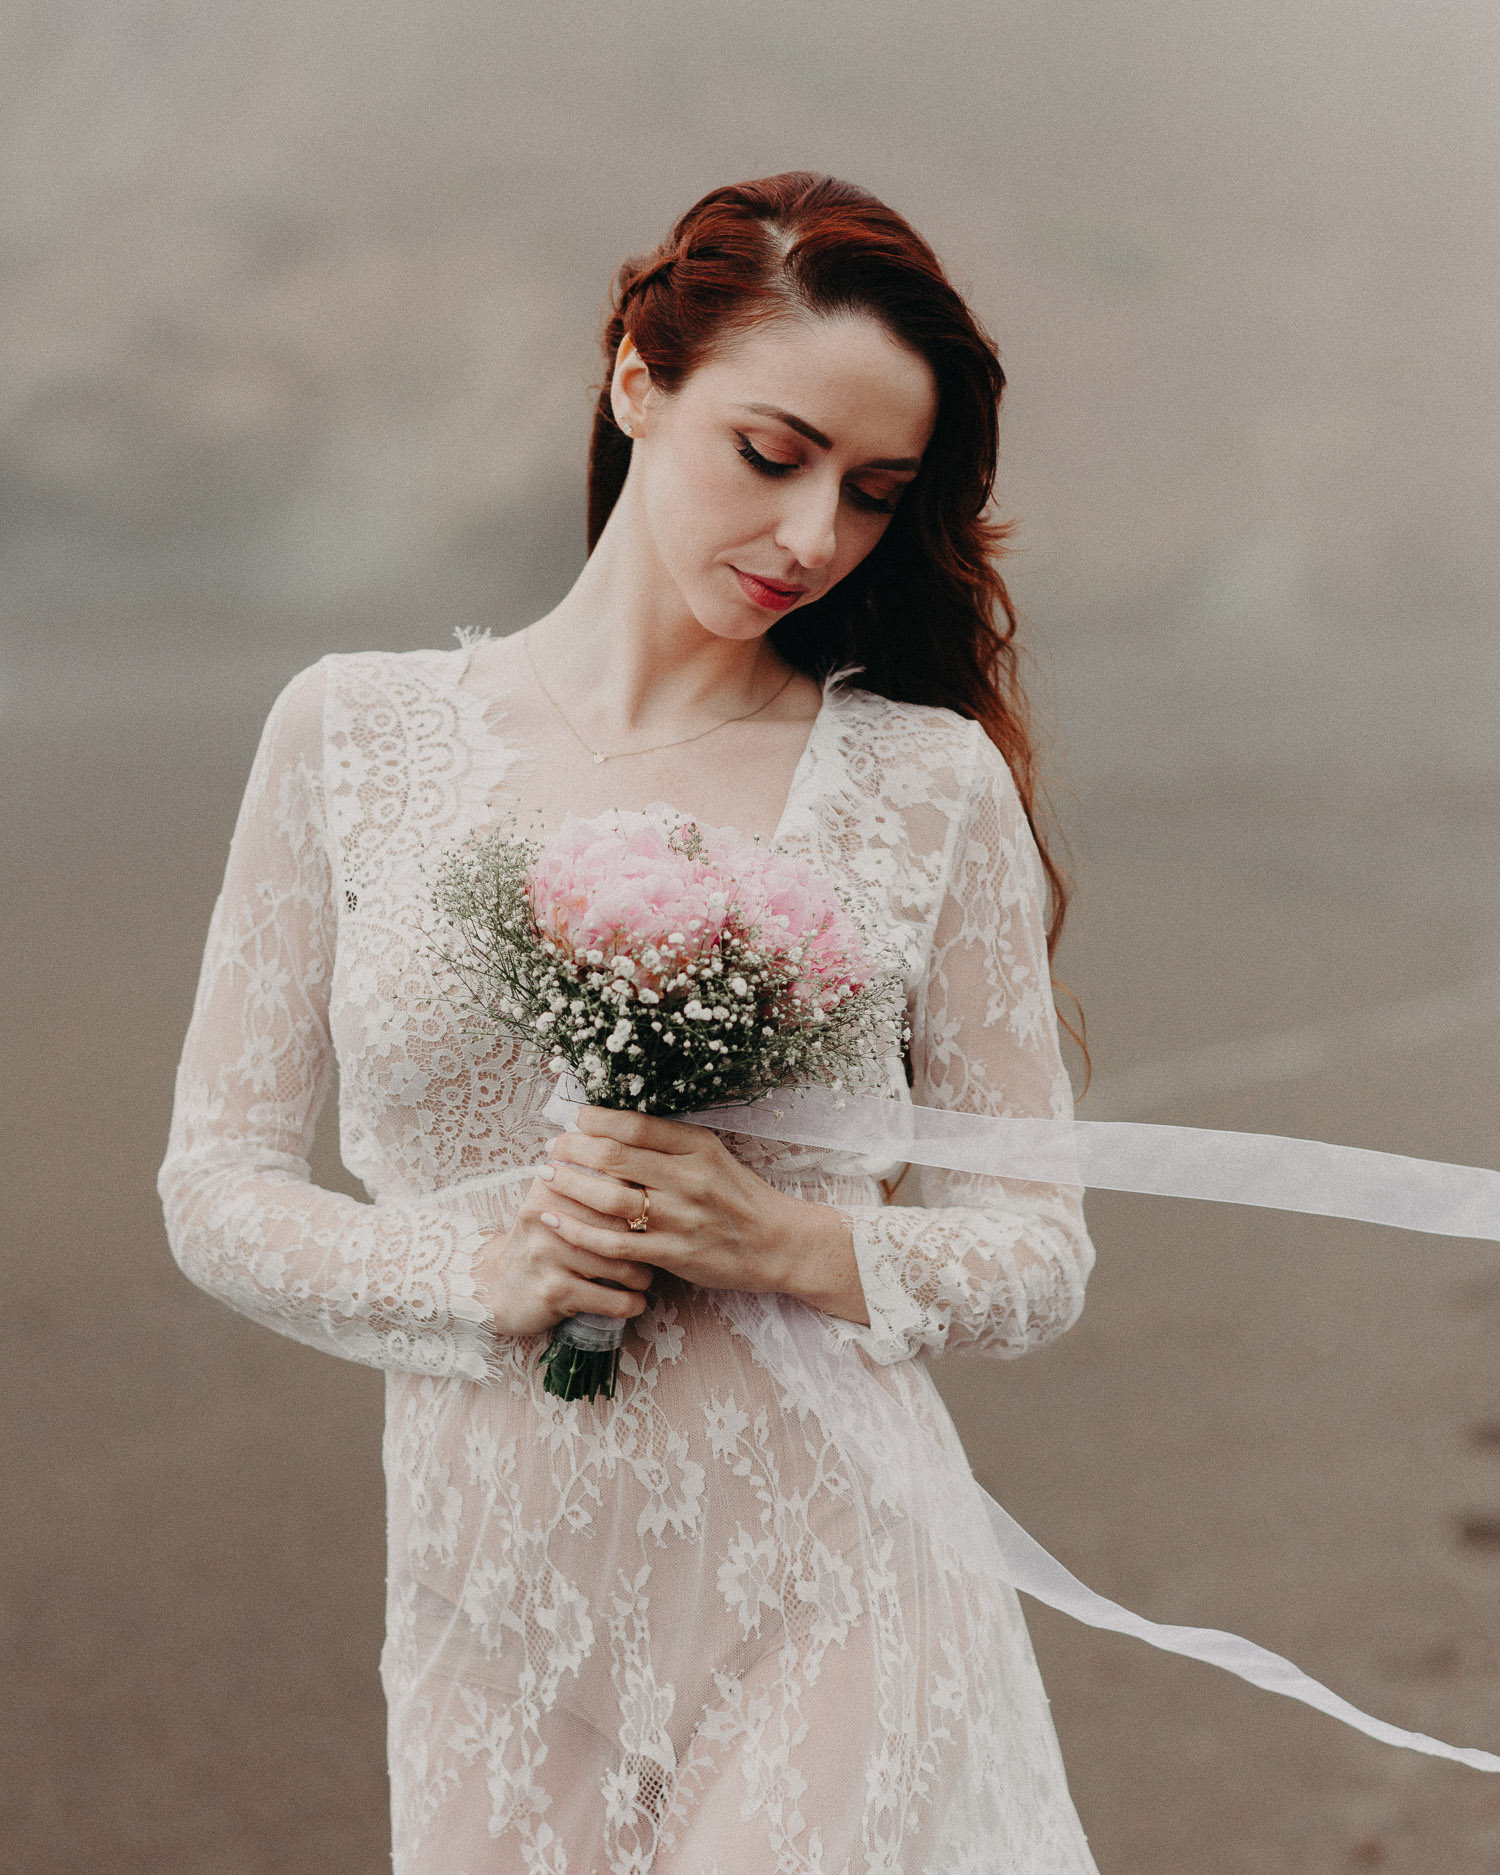 Image of red hair bride holds pink flower bouquet